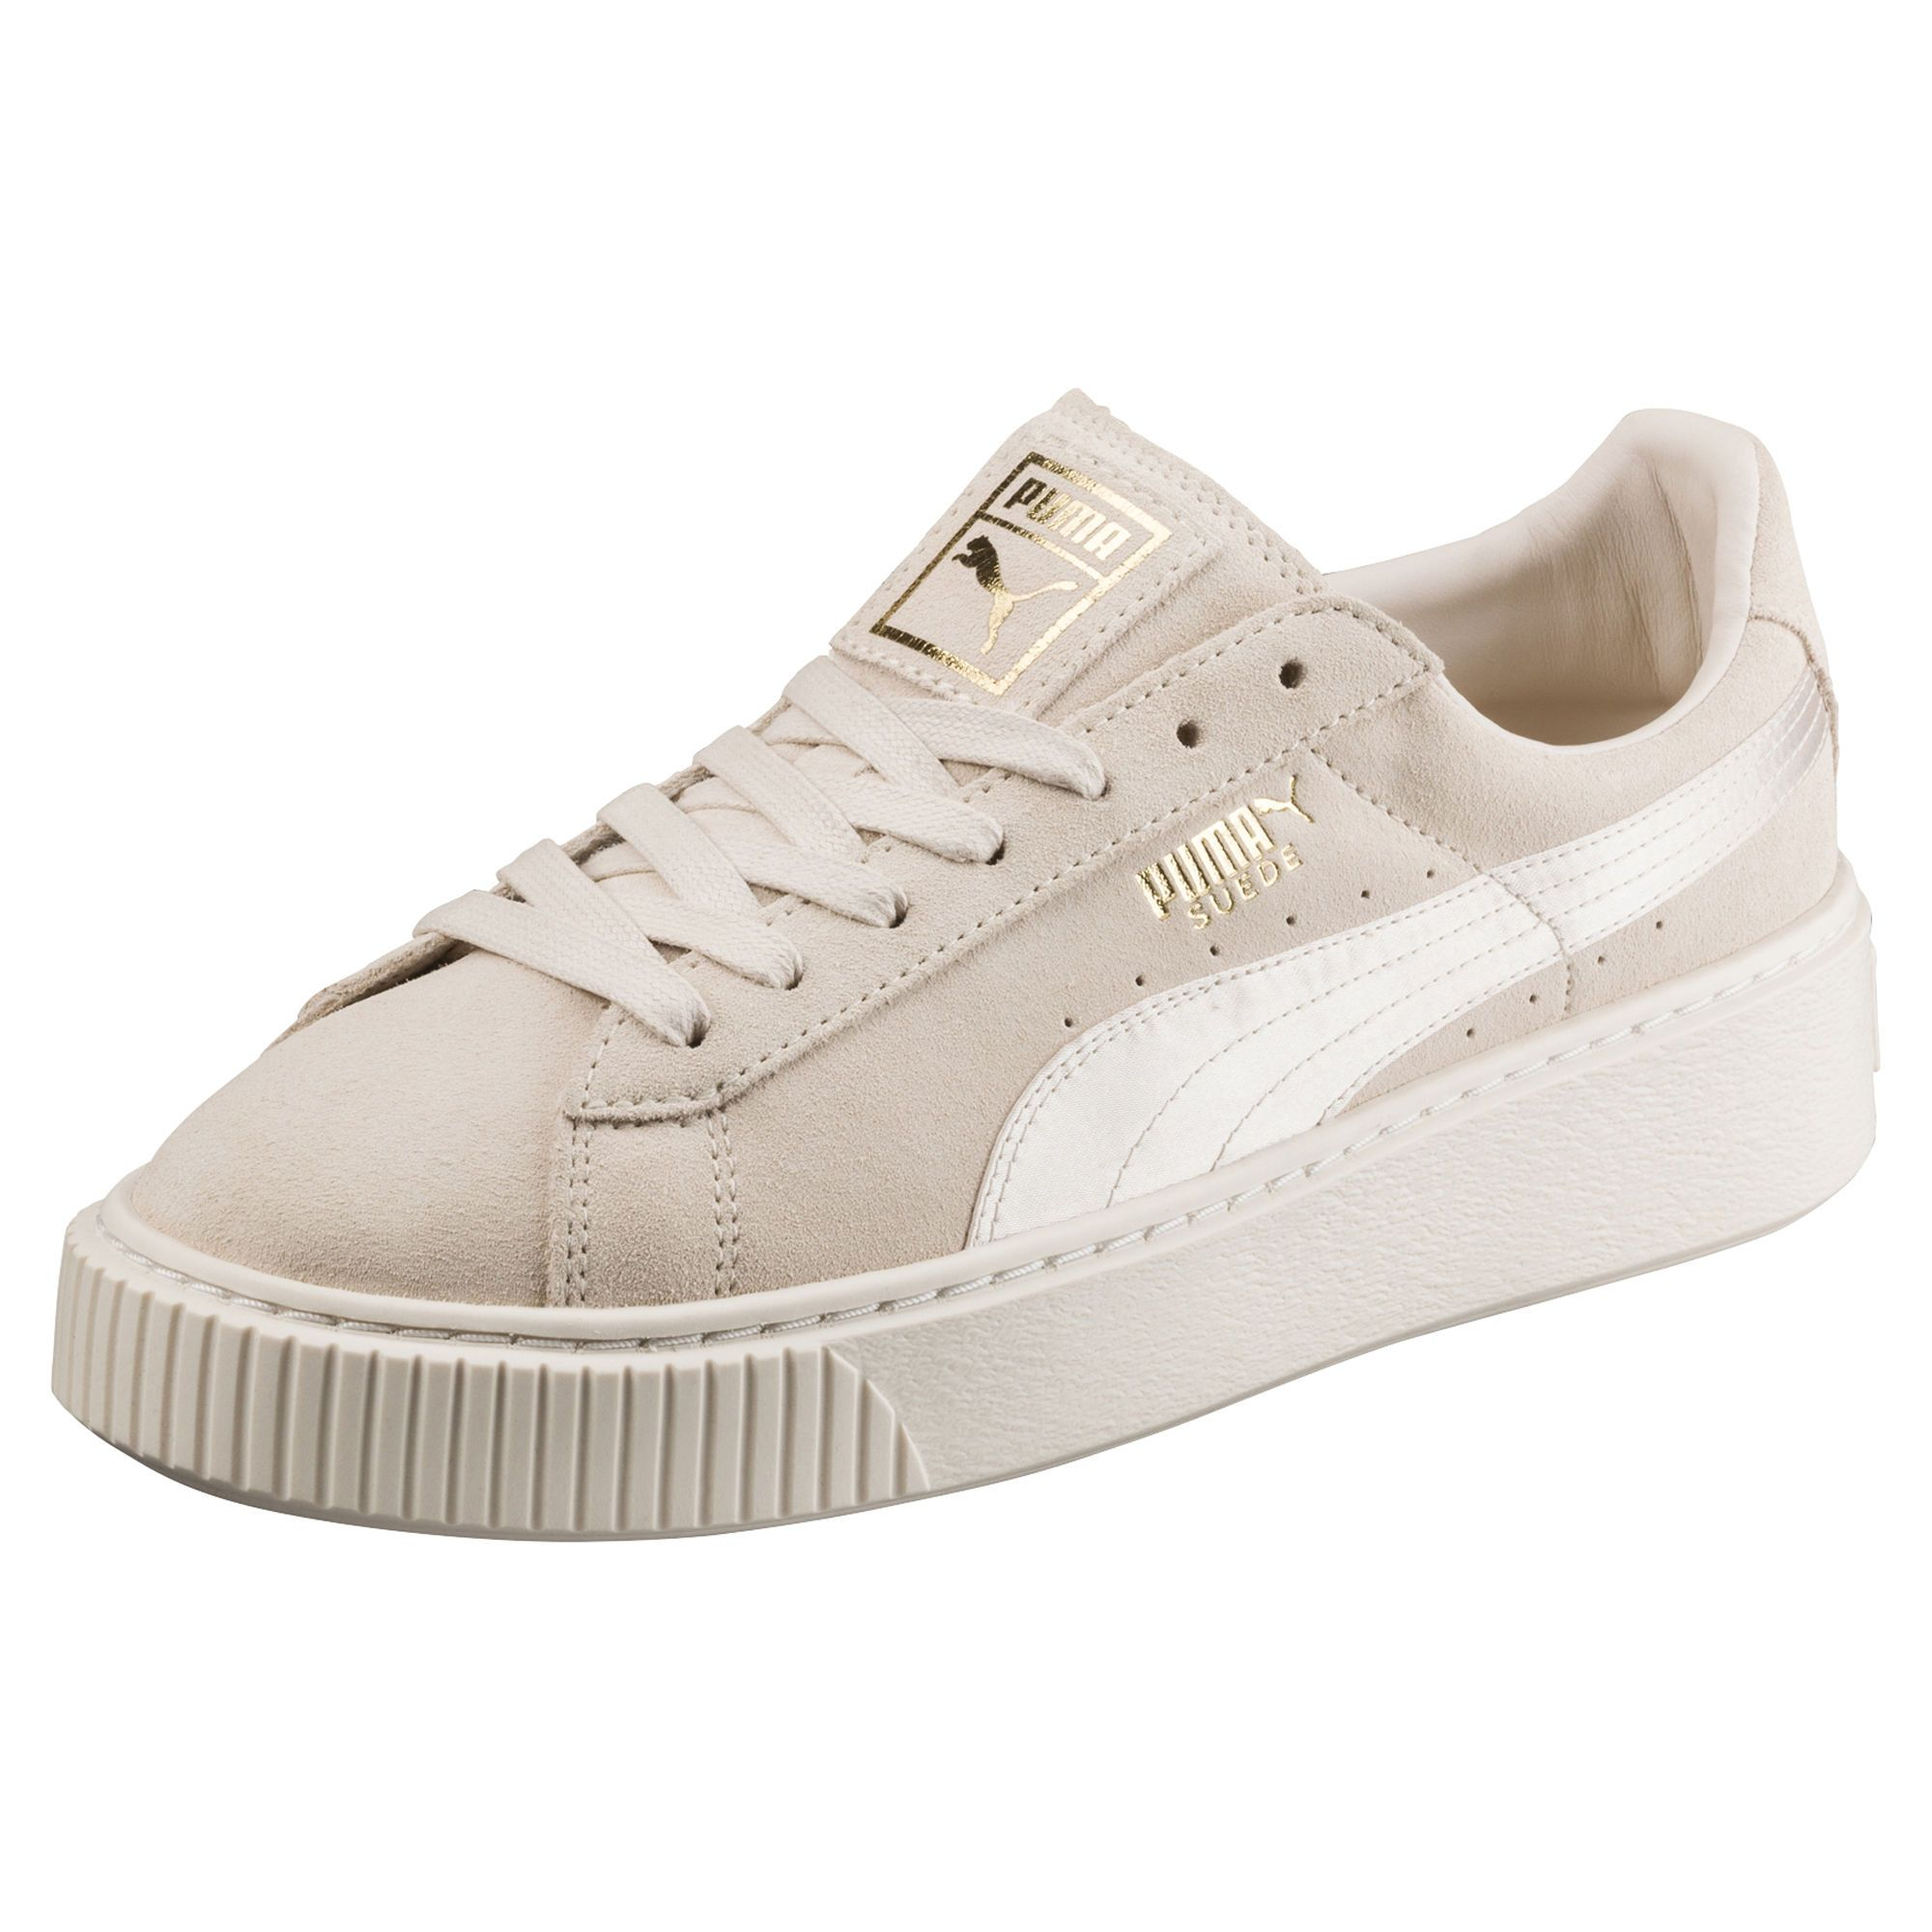 Baskets en mesh à enfiler | Puma shoes women, Puma shoes ...